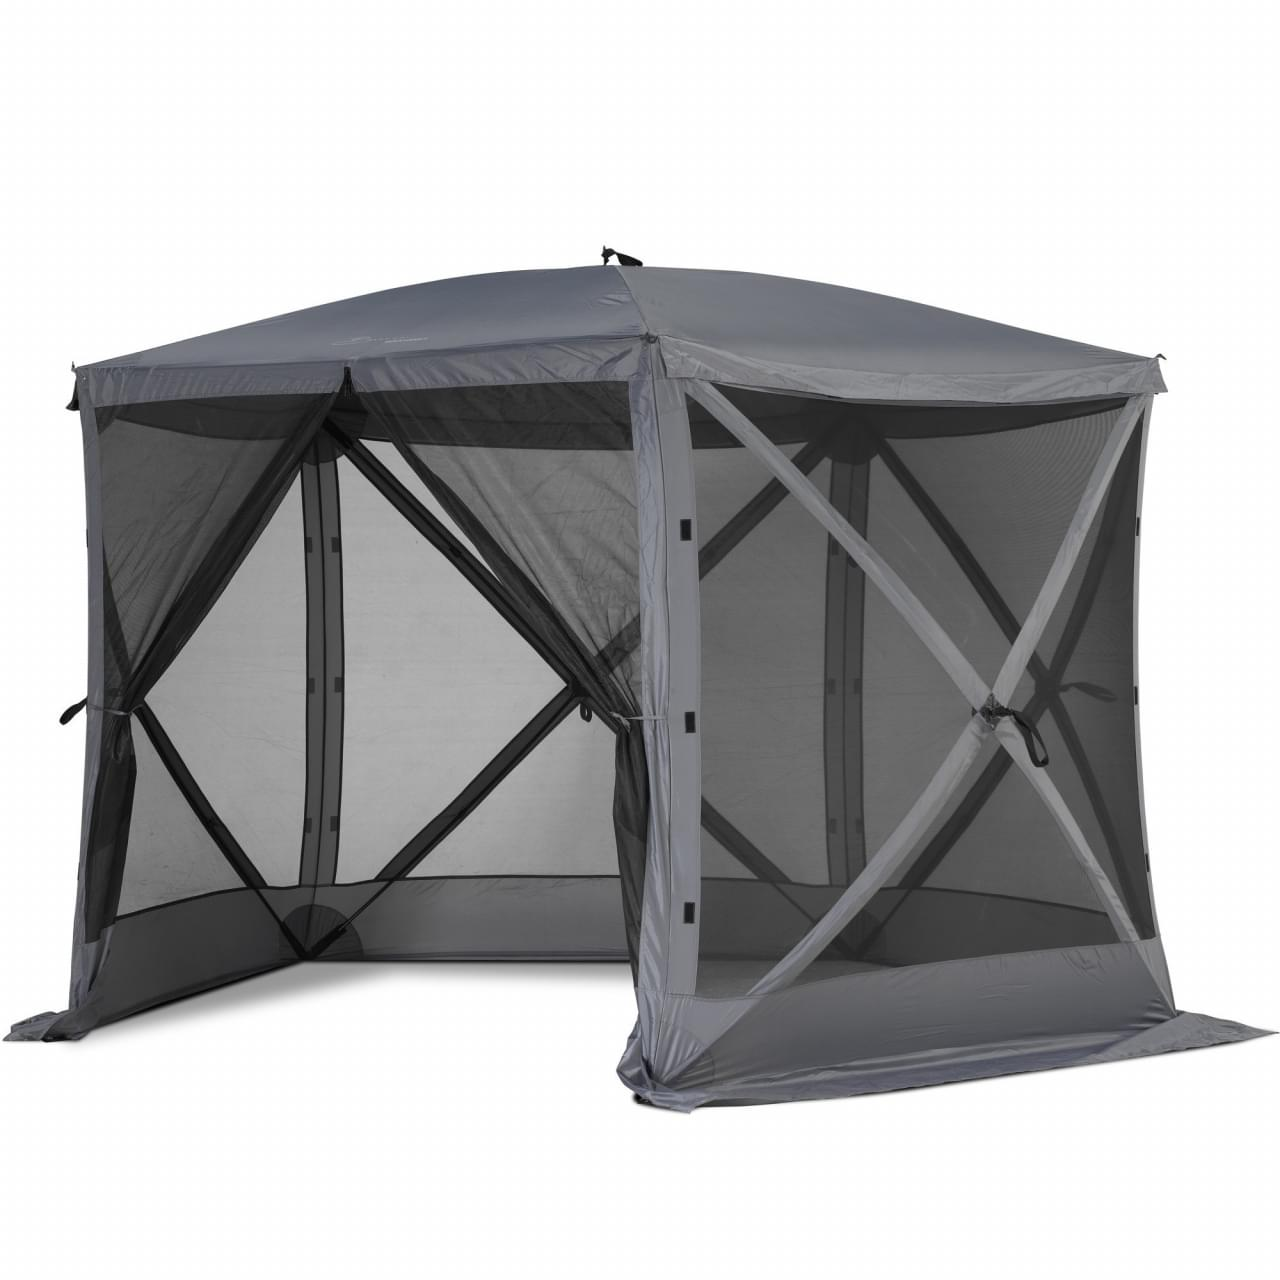 Bardani Quick Lodge 5 - Partytent